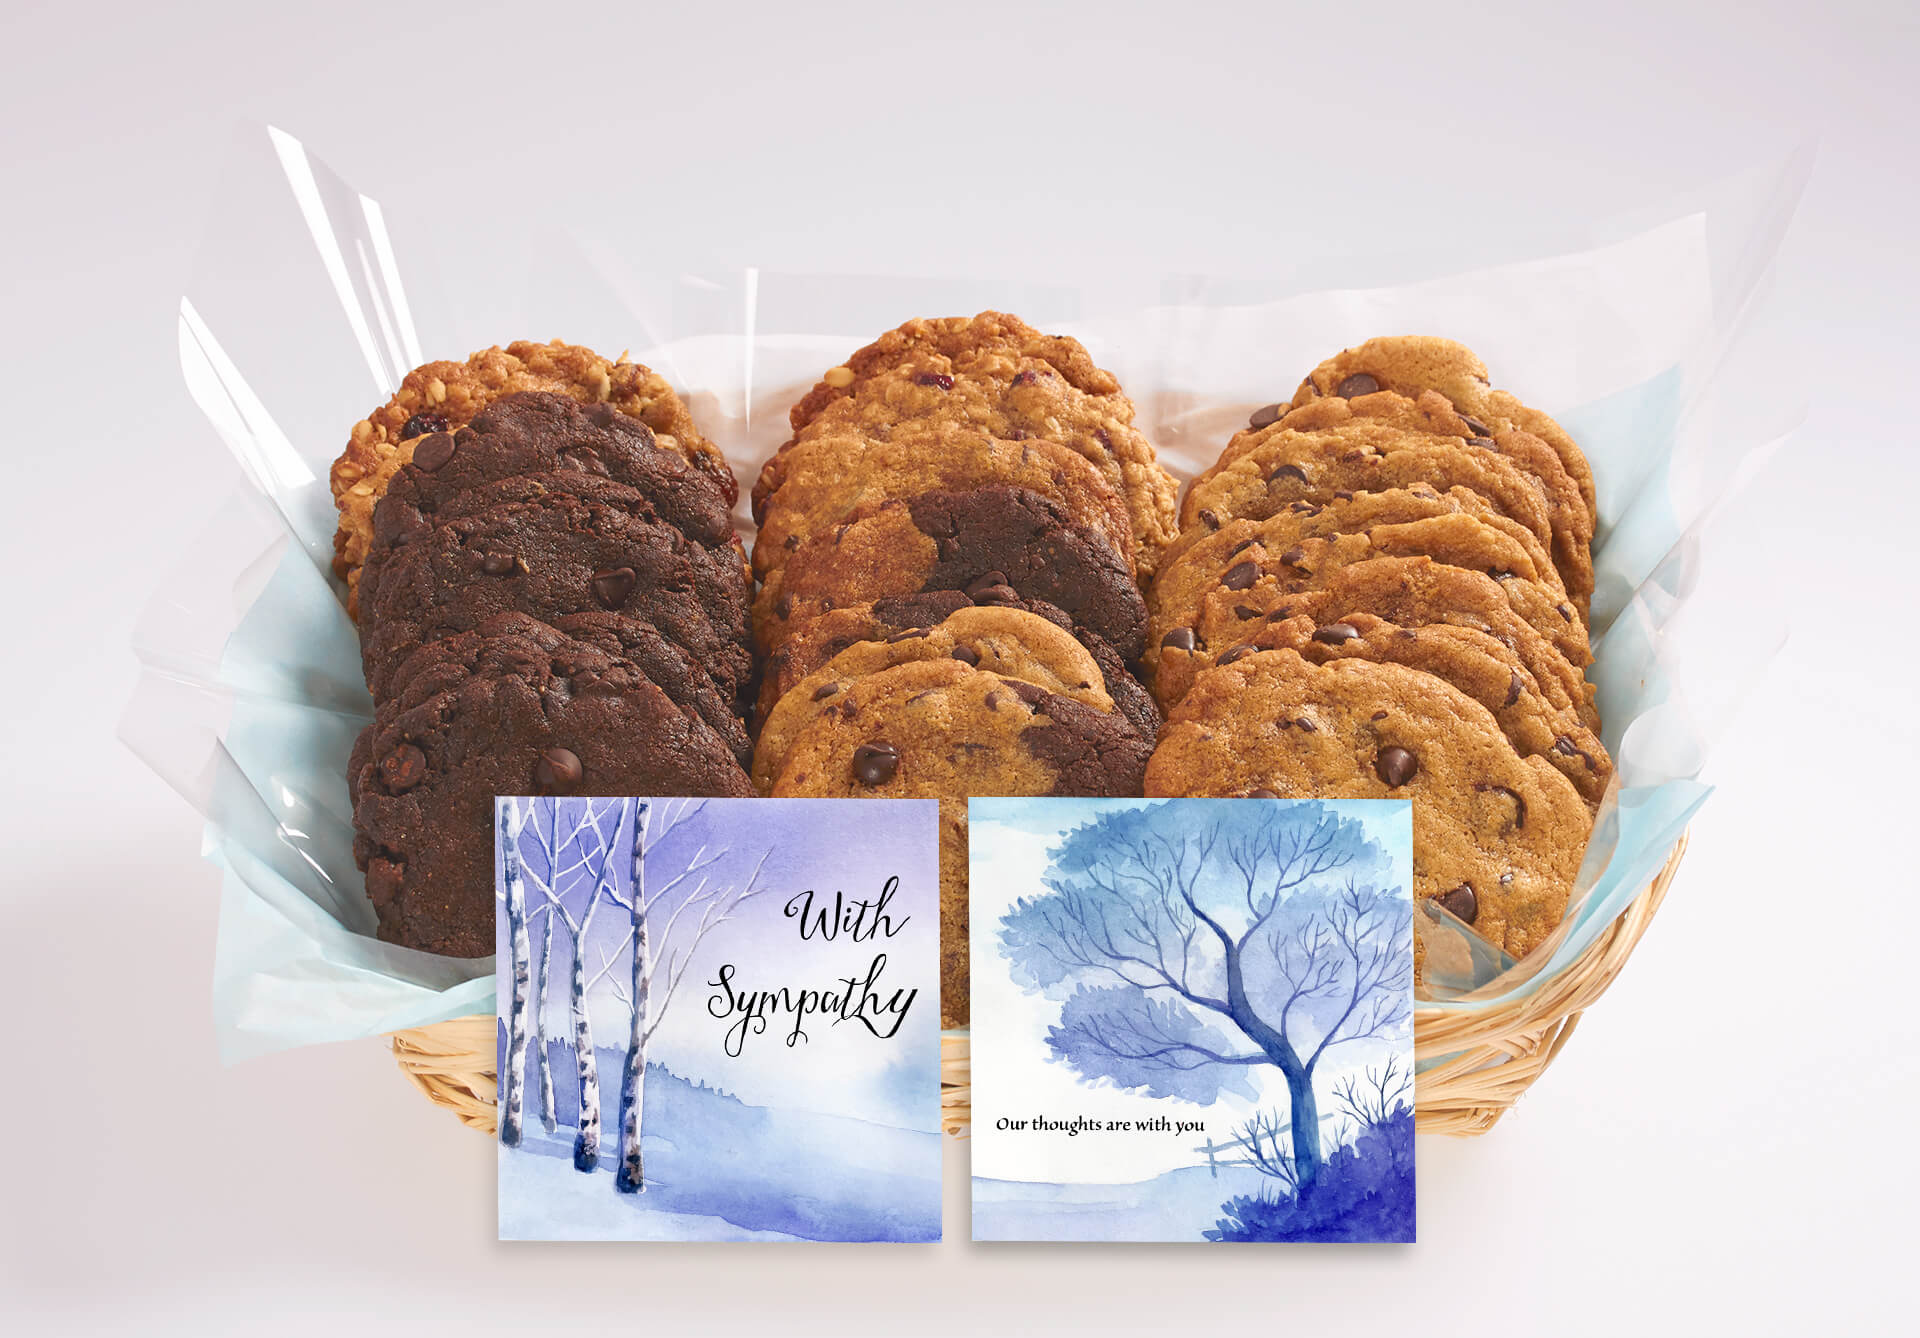 With sympathy cookie gift basket